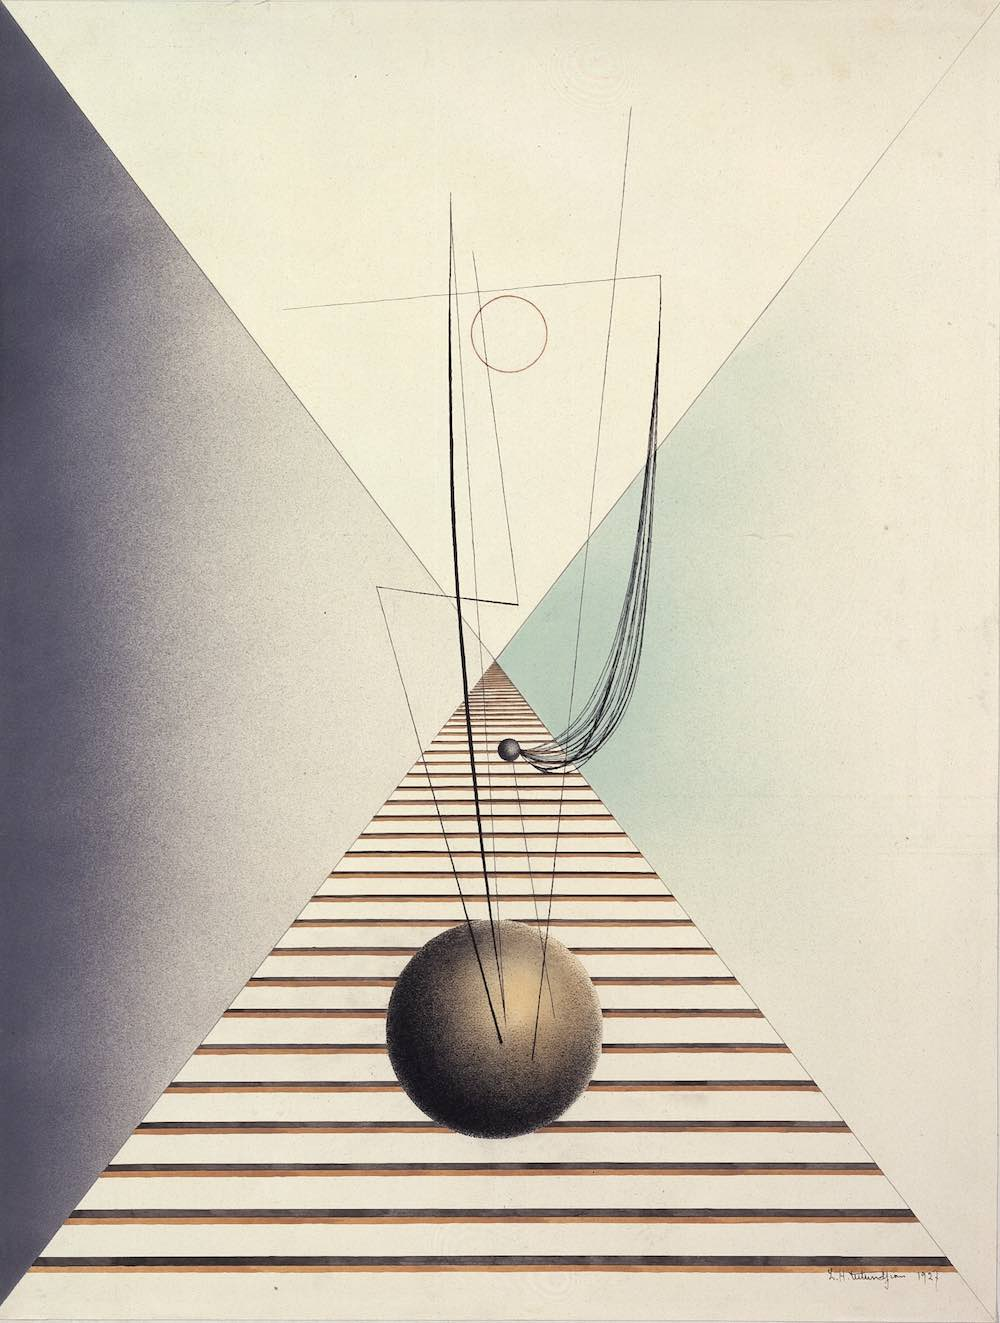 Untitled, 1927, ink and watercolour on paper, 64 x 49,5 cm